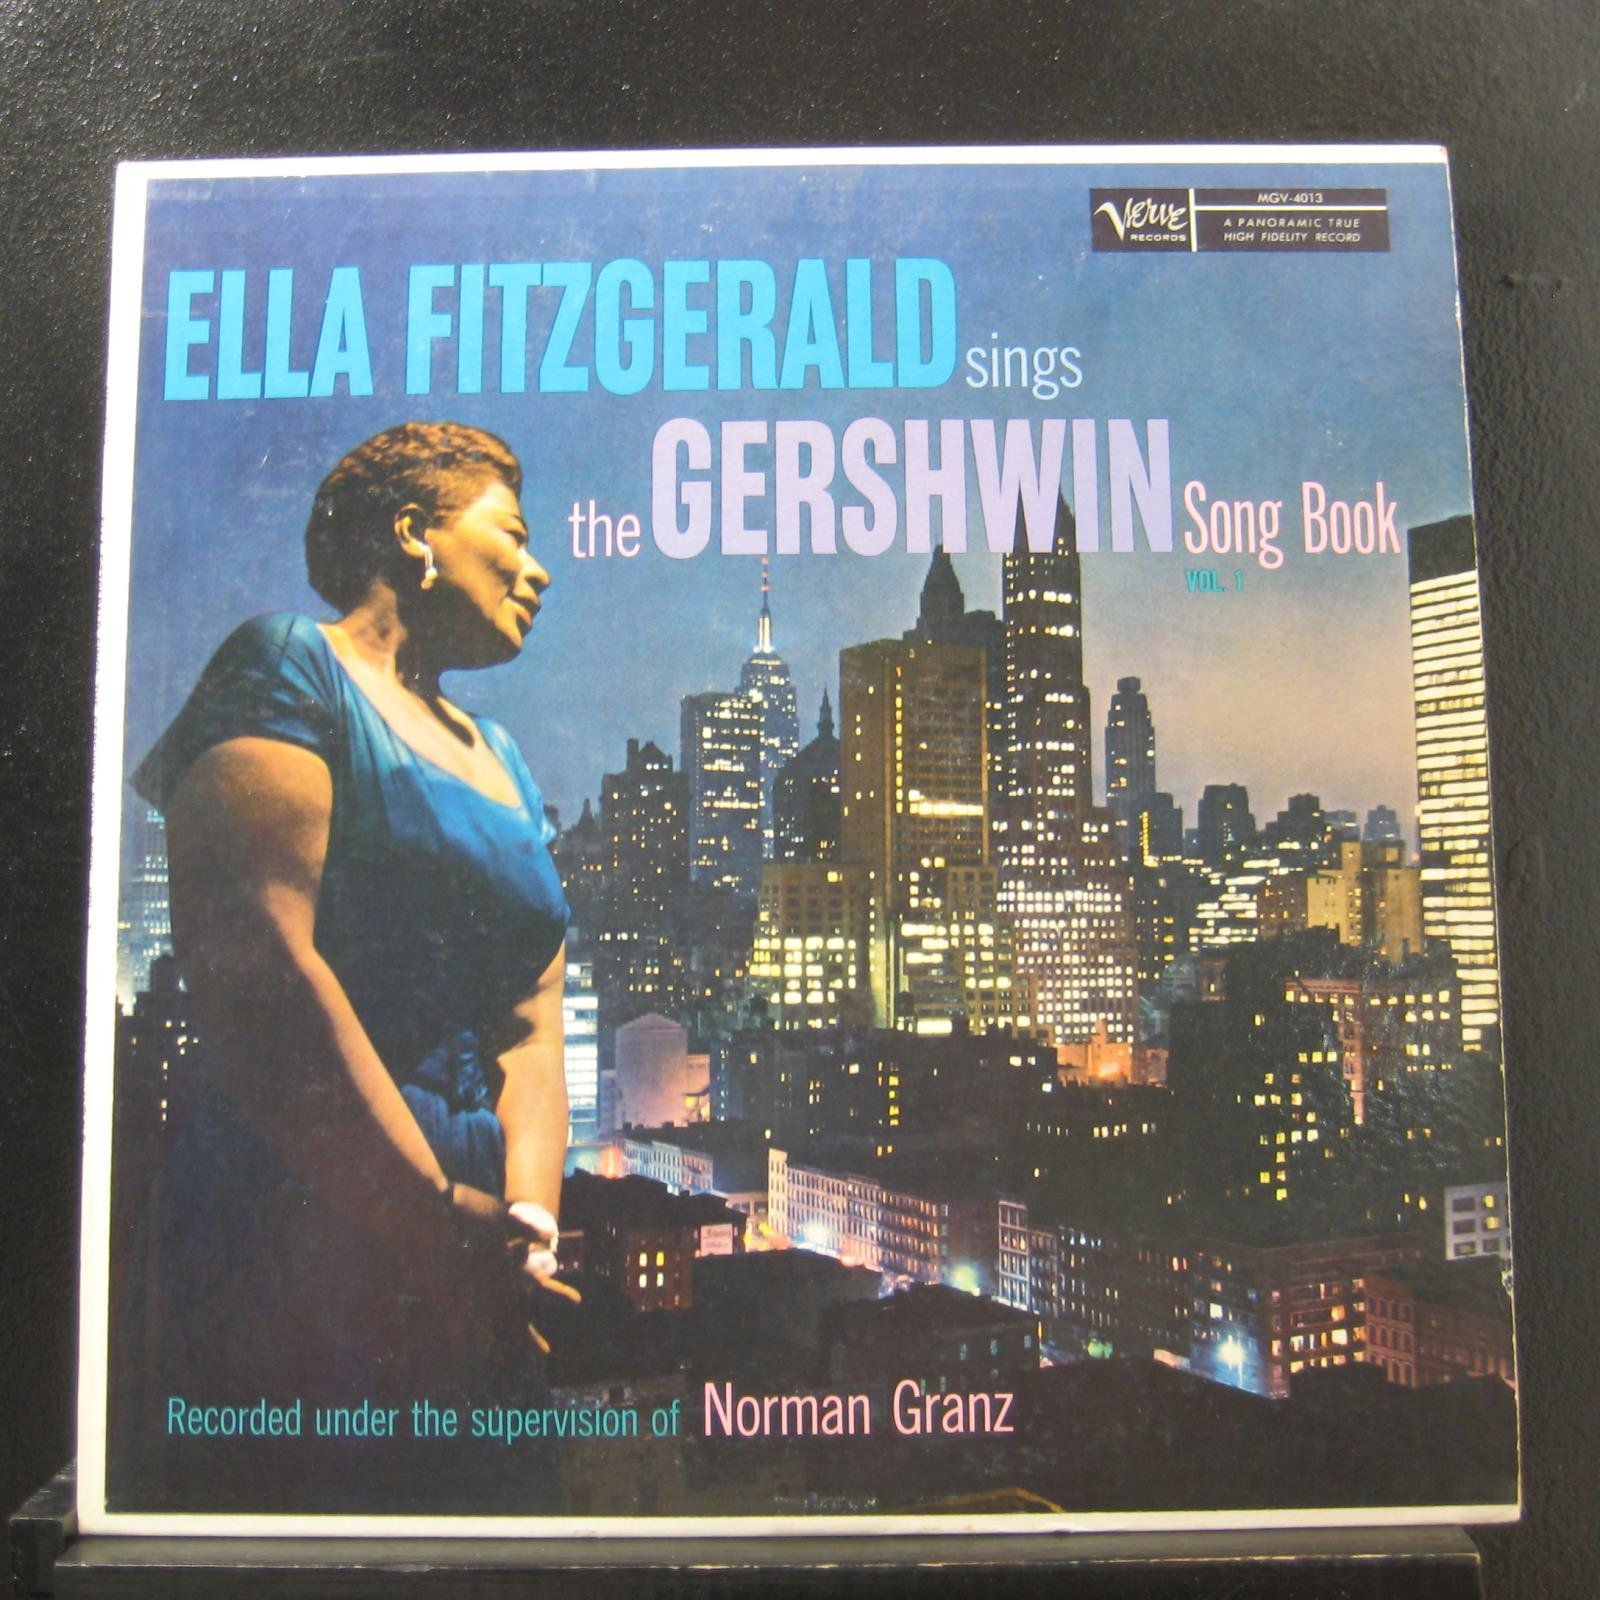 Ella Fitzgerald Sings the Gershwin Song Book (Volume 1)